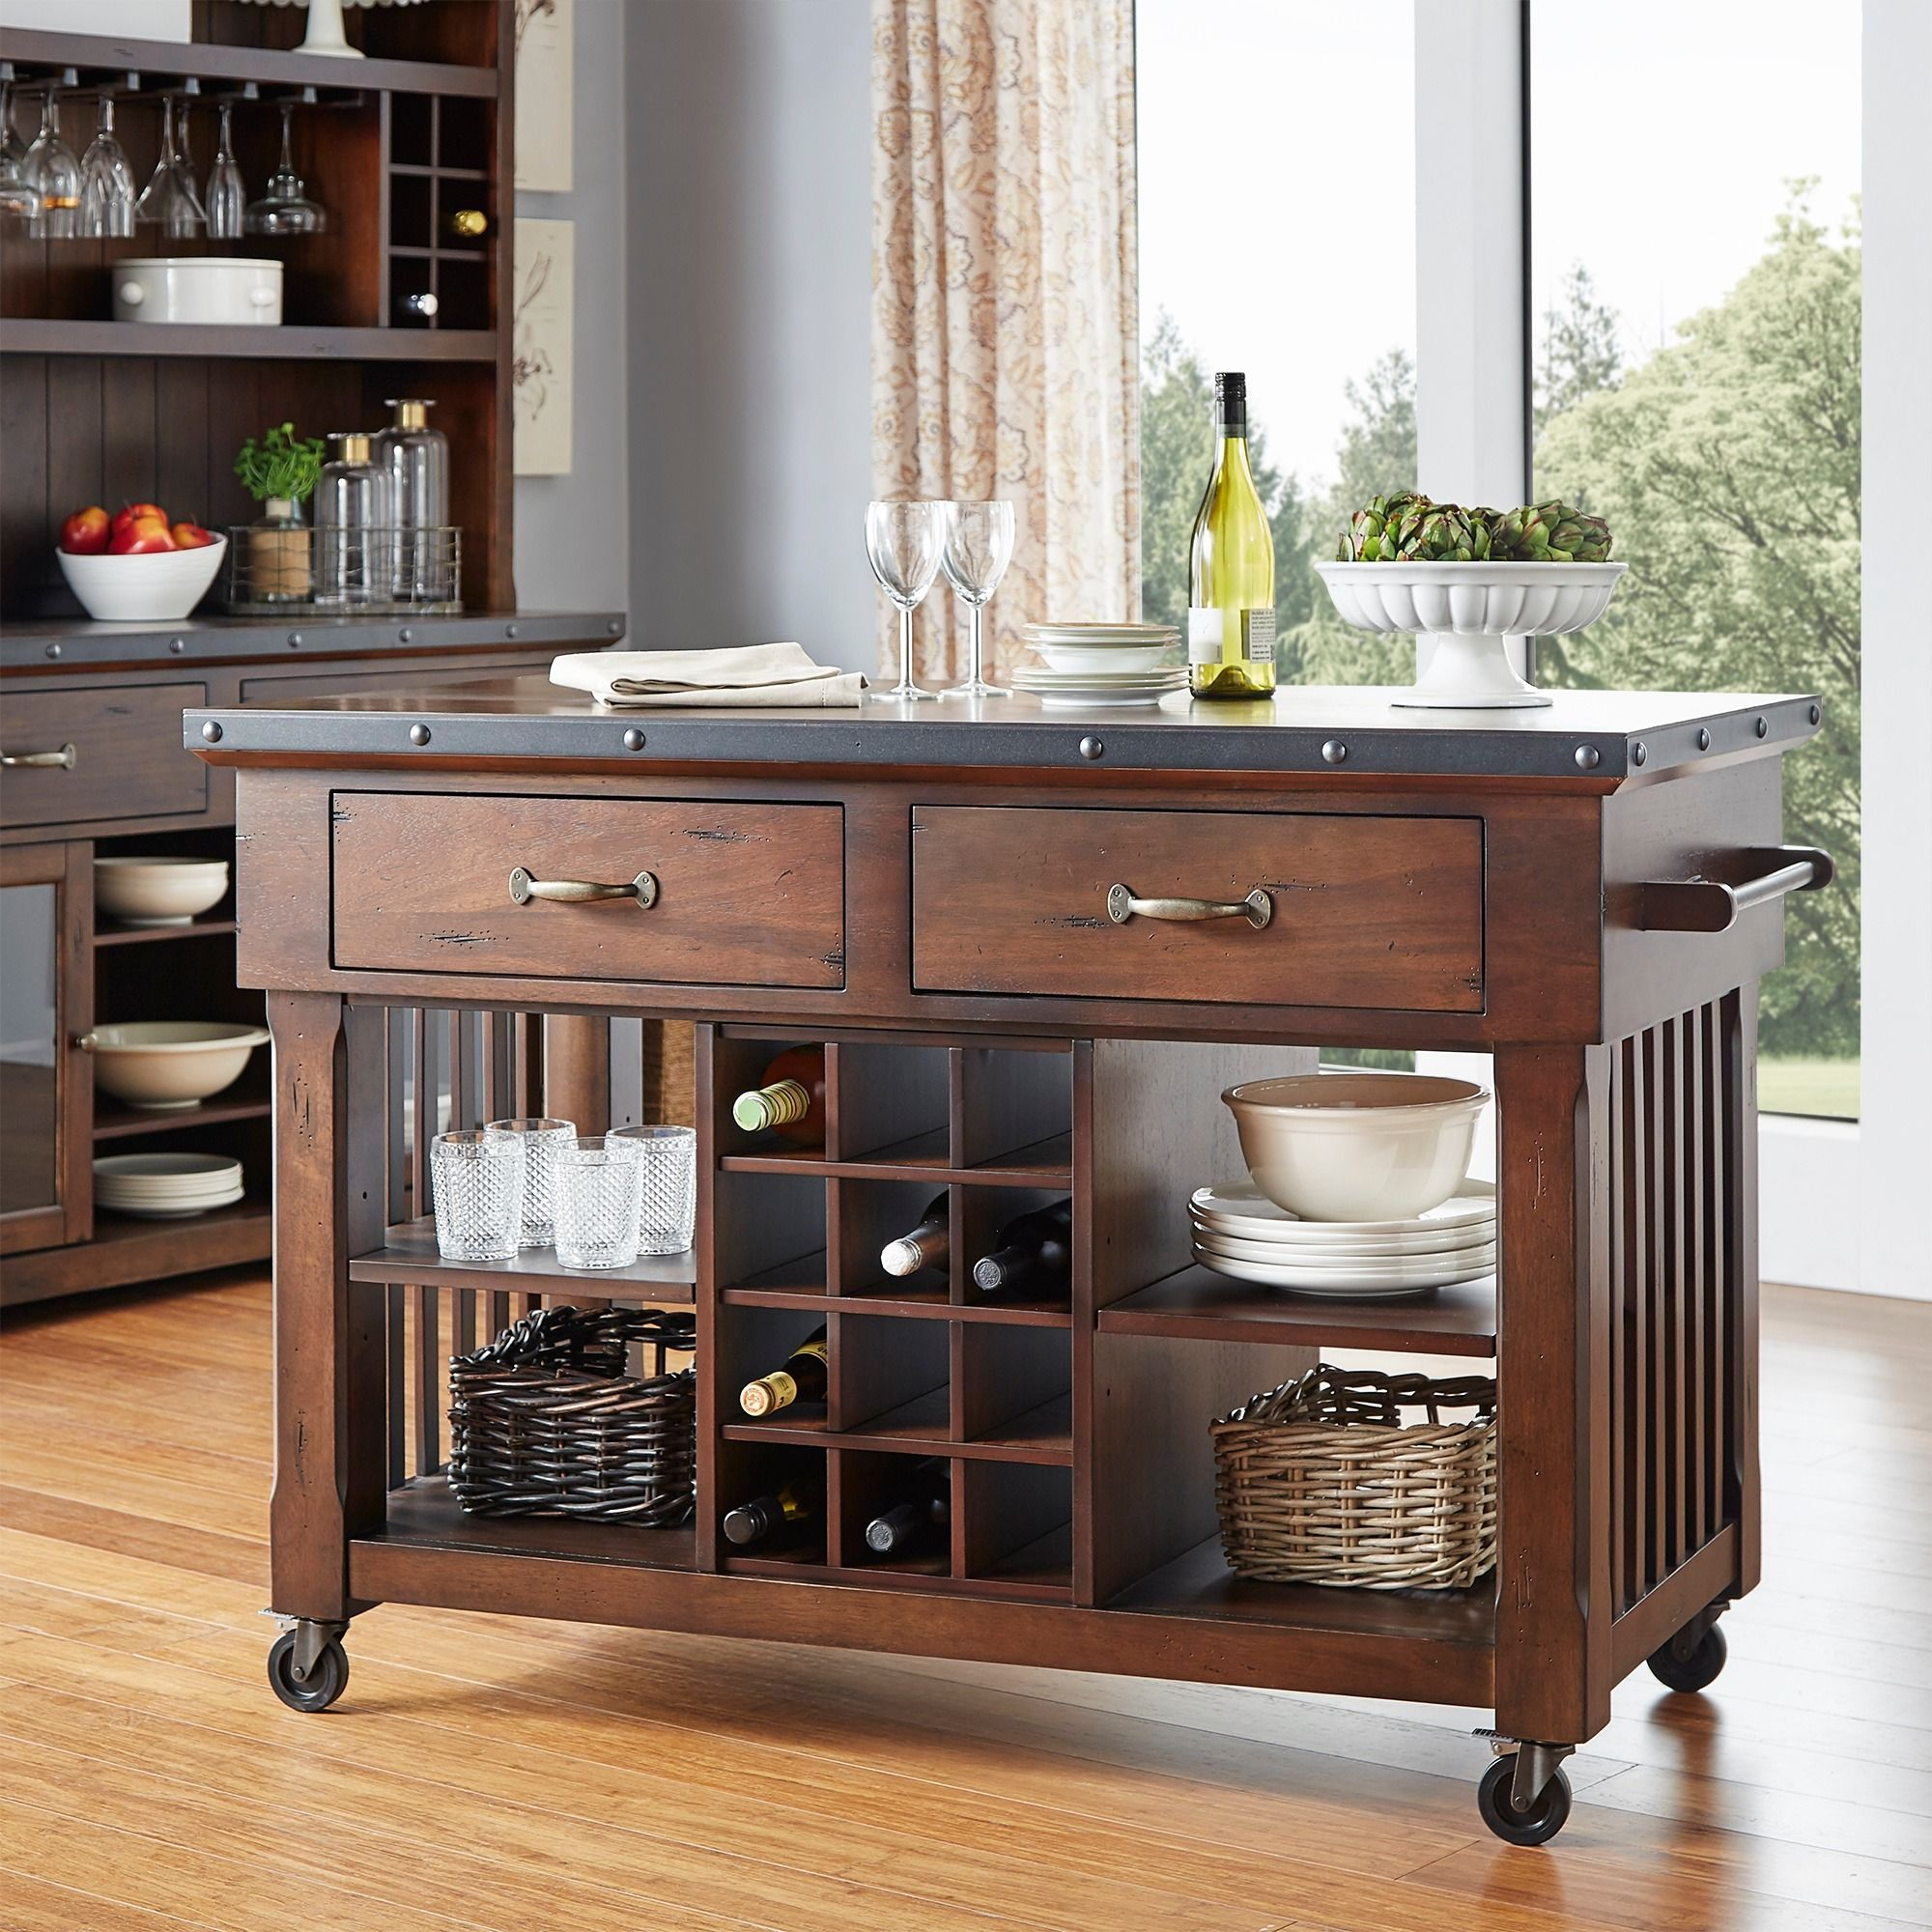 norwood 2 drawer kitchen cart with wine rack kitchen cart brown kitchen carts wine rack. Black Bedroom Furniture Sets. Home Design Ideas